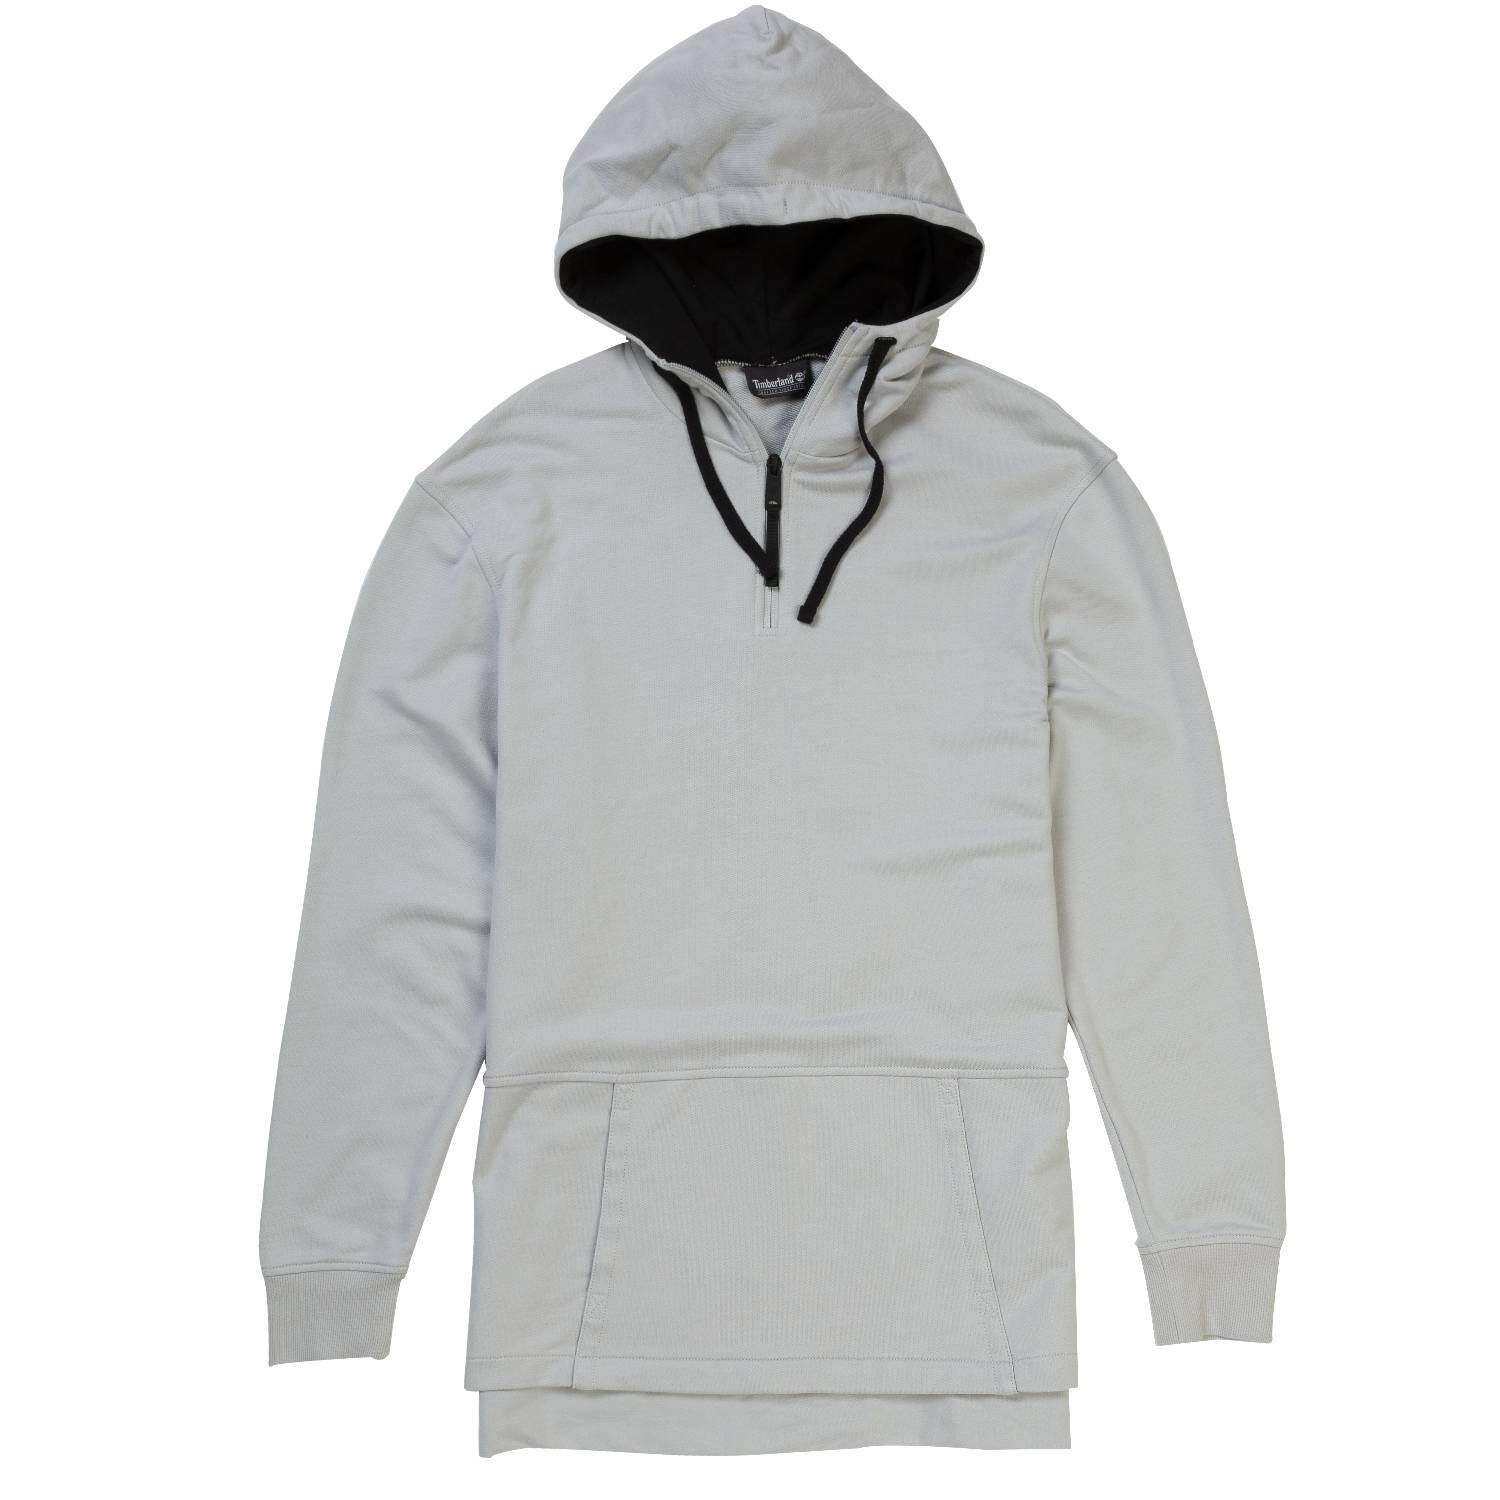 9d93c4c65f Popular Men's Hoodies for the Best Prices in Malaysia